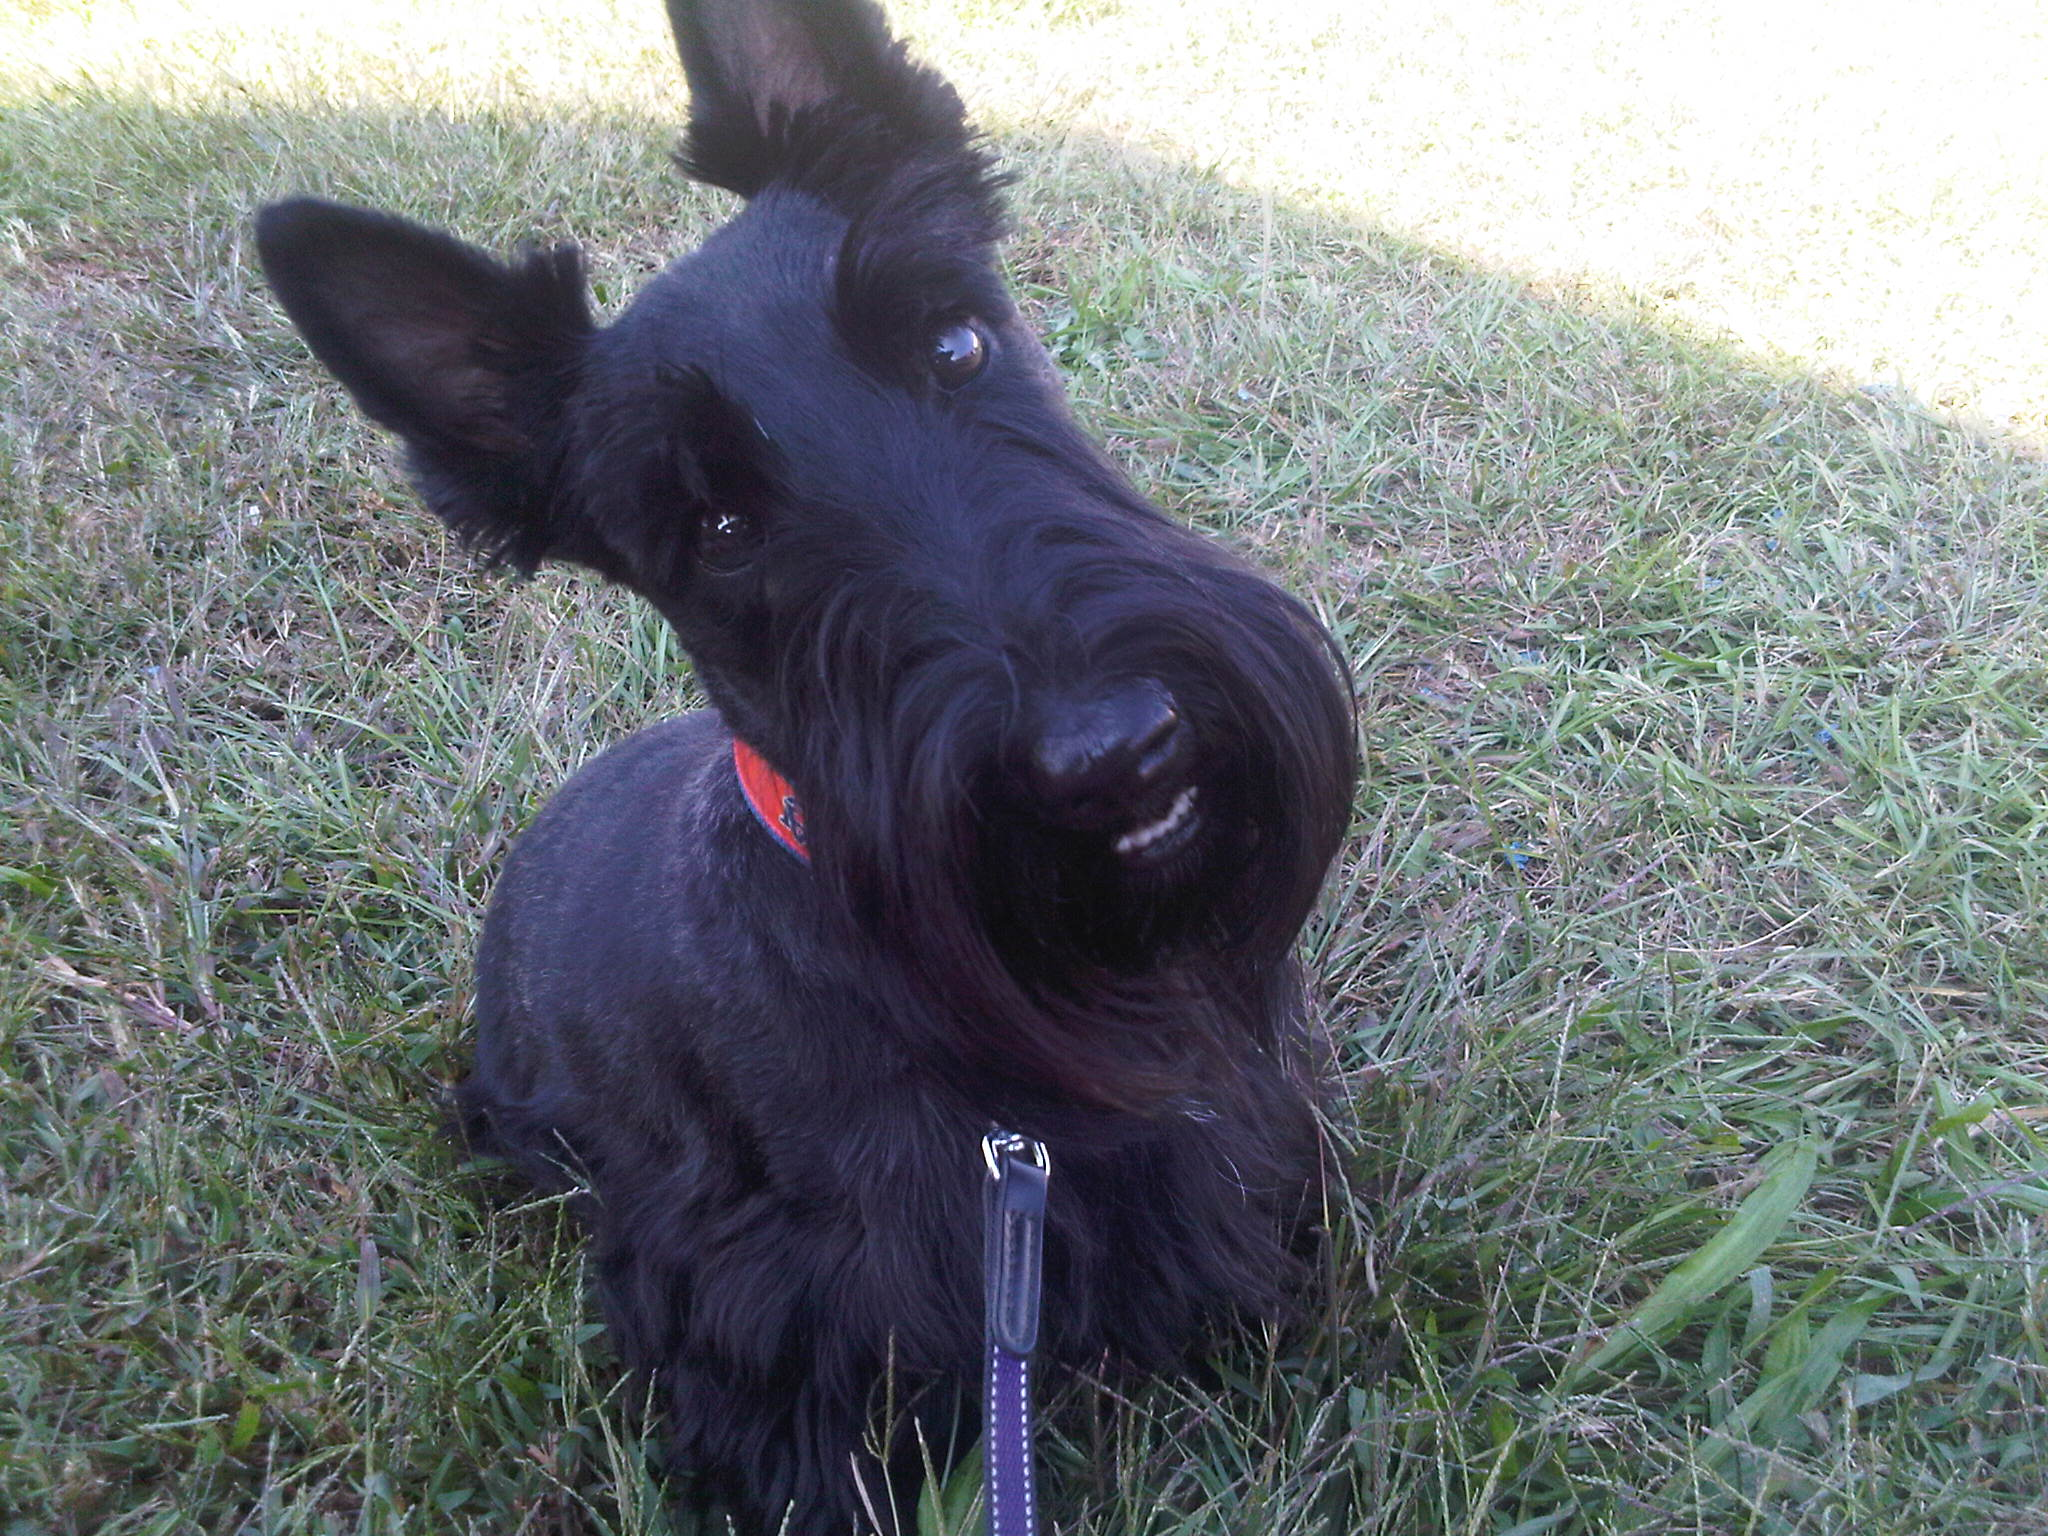 Funny Scottish Terrier dog face wallpaper